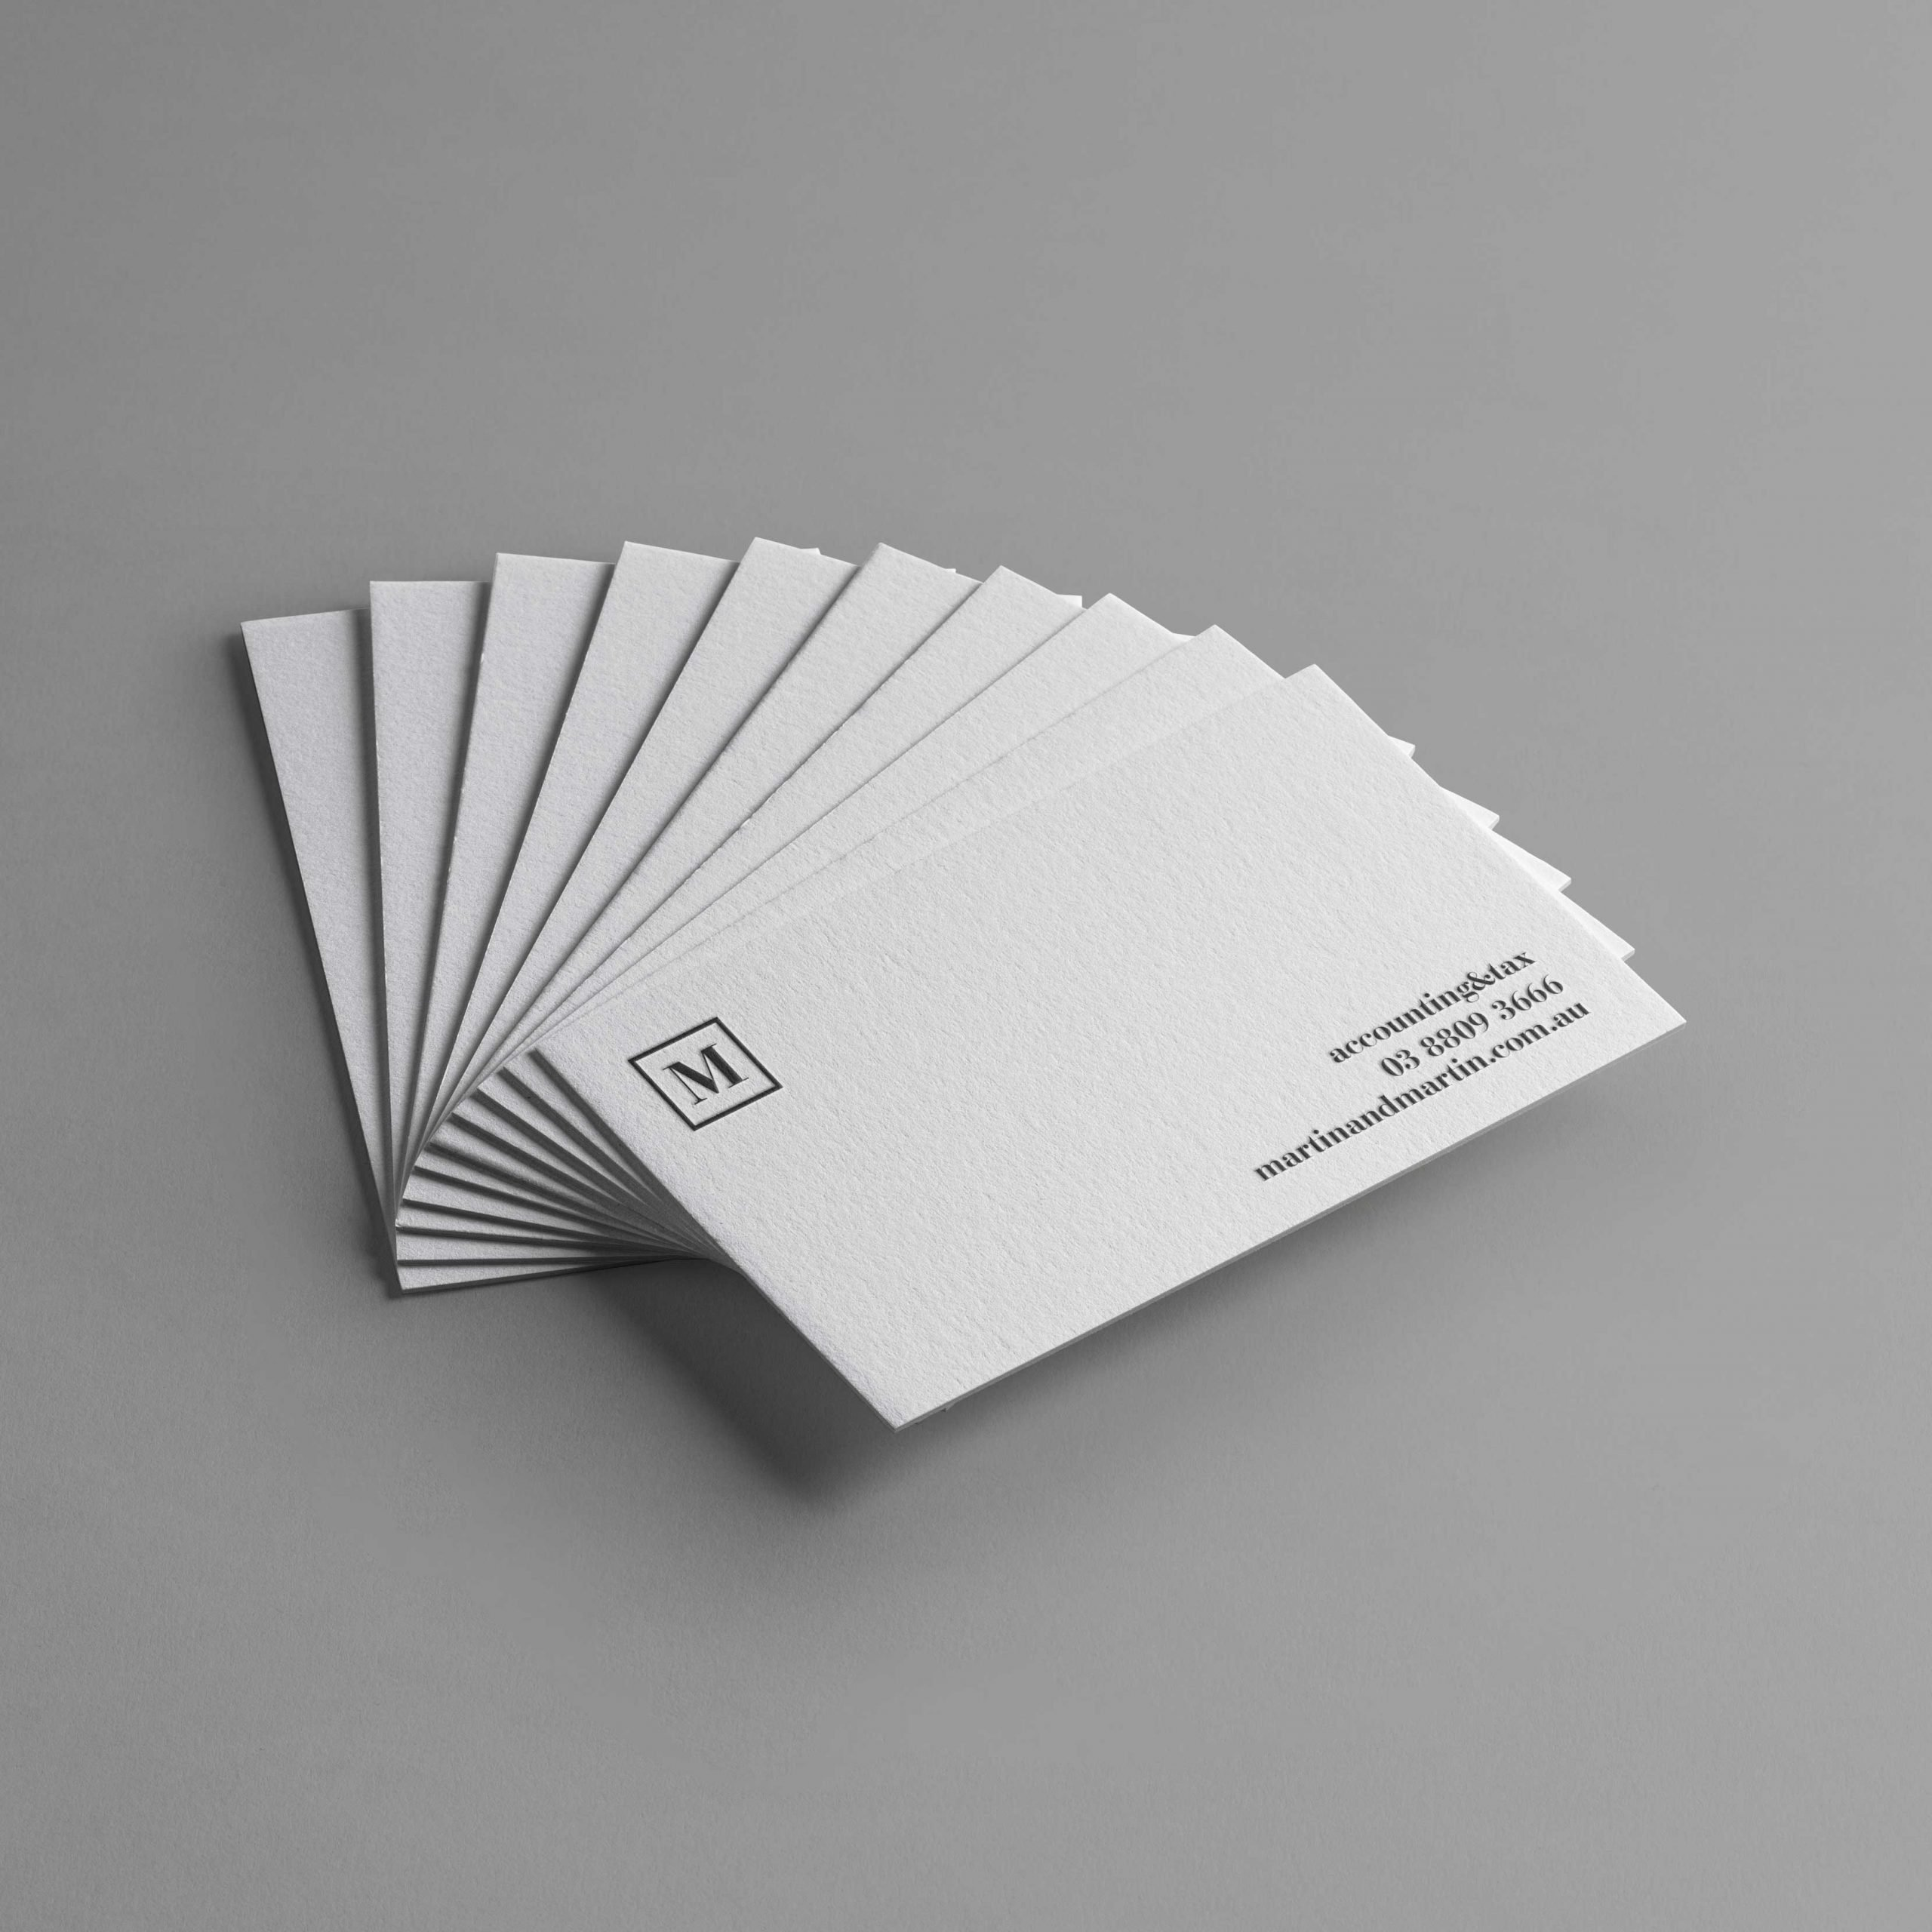 martin and Martin businescard design